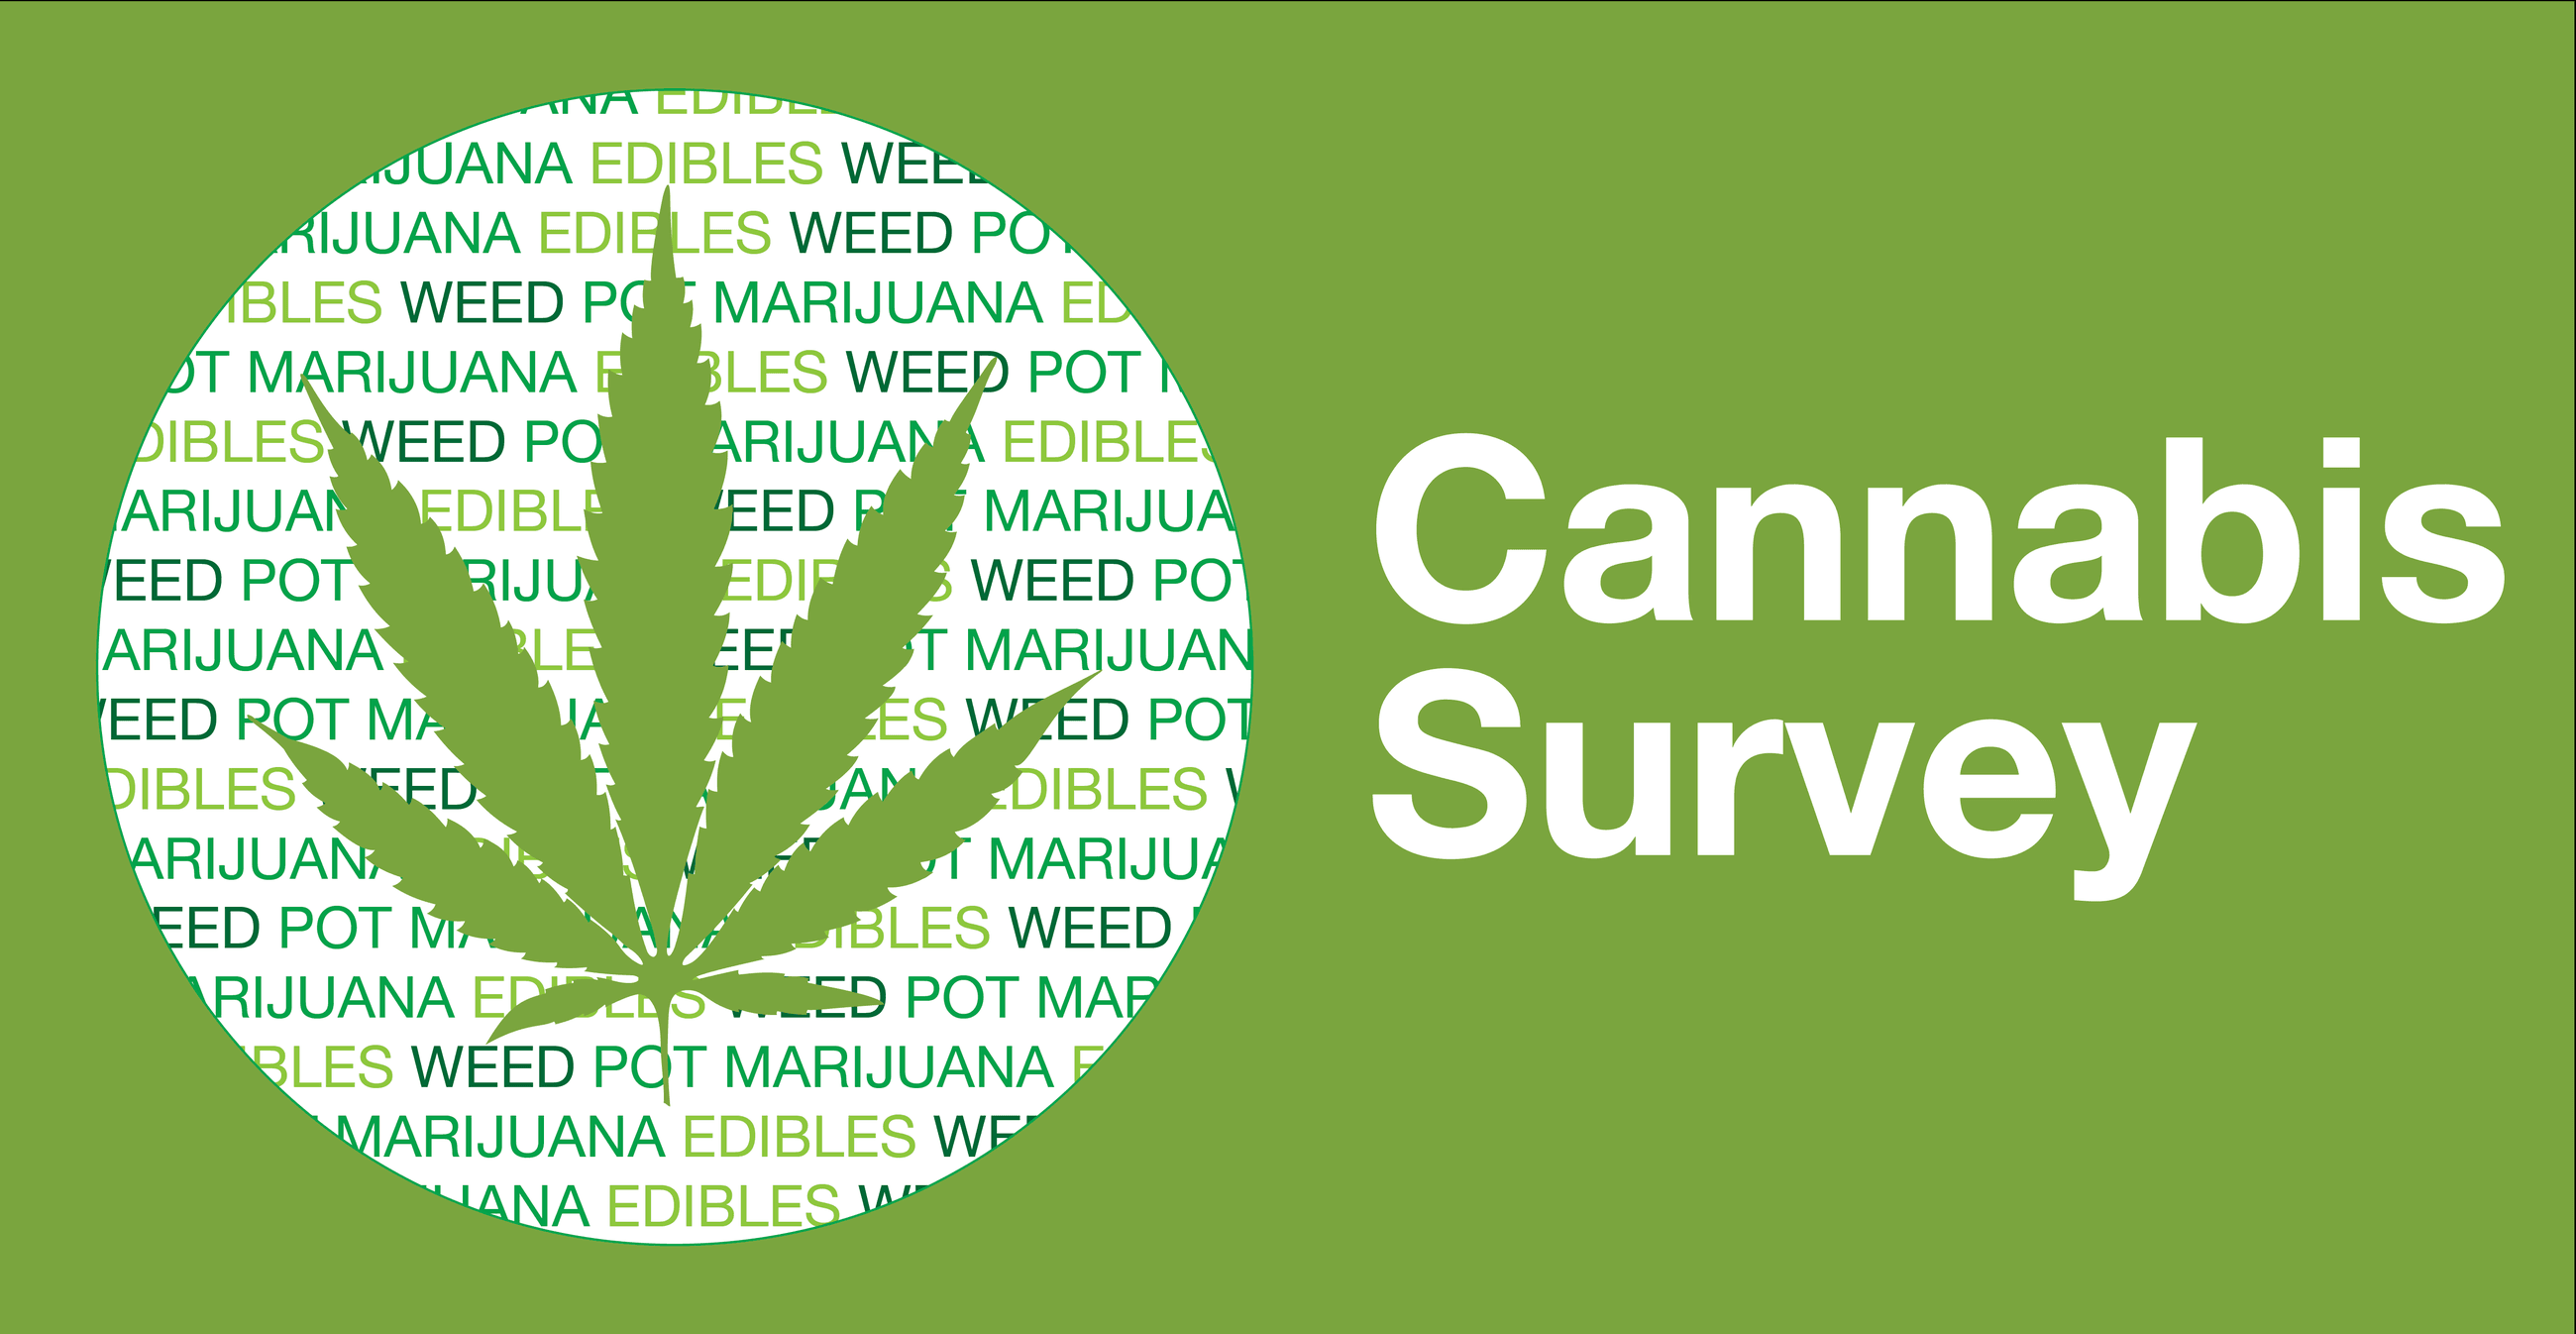 Cannabis survey